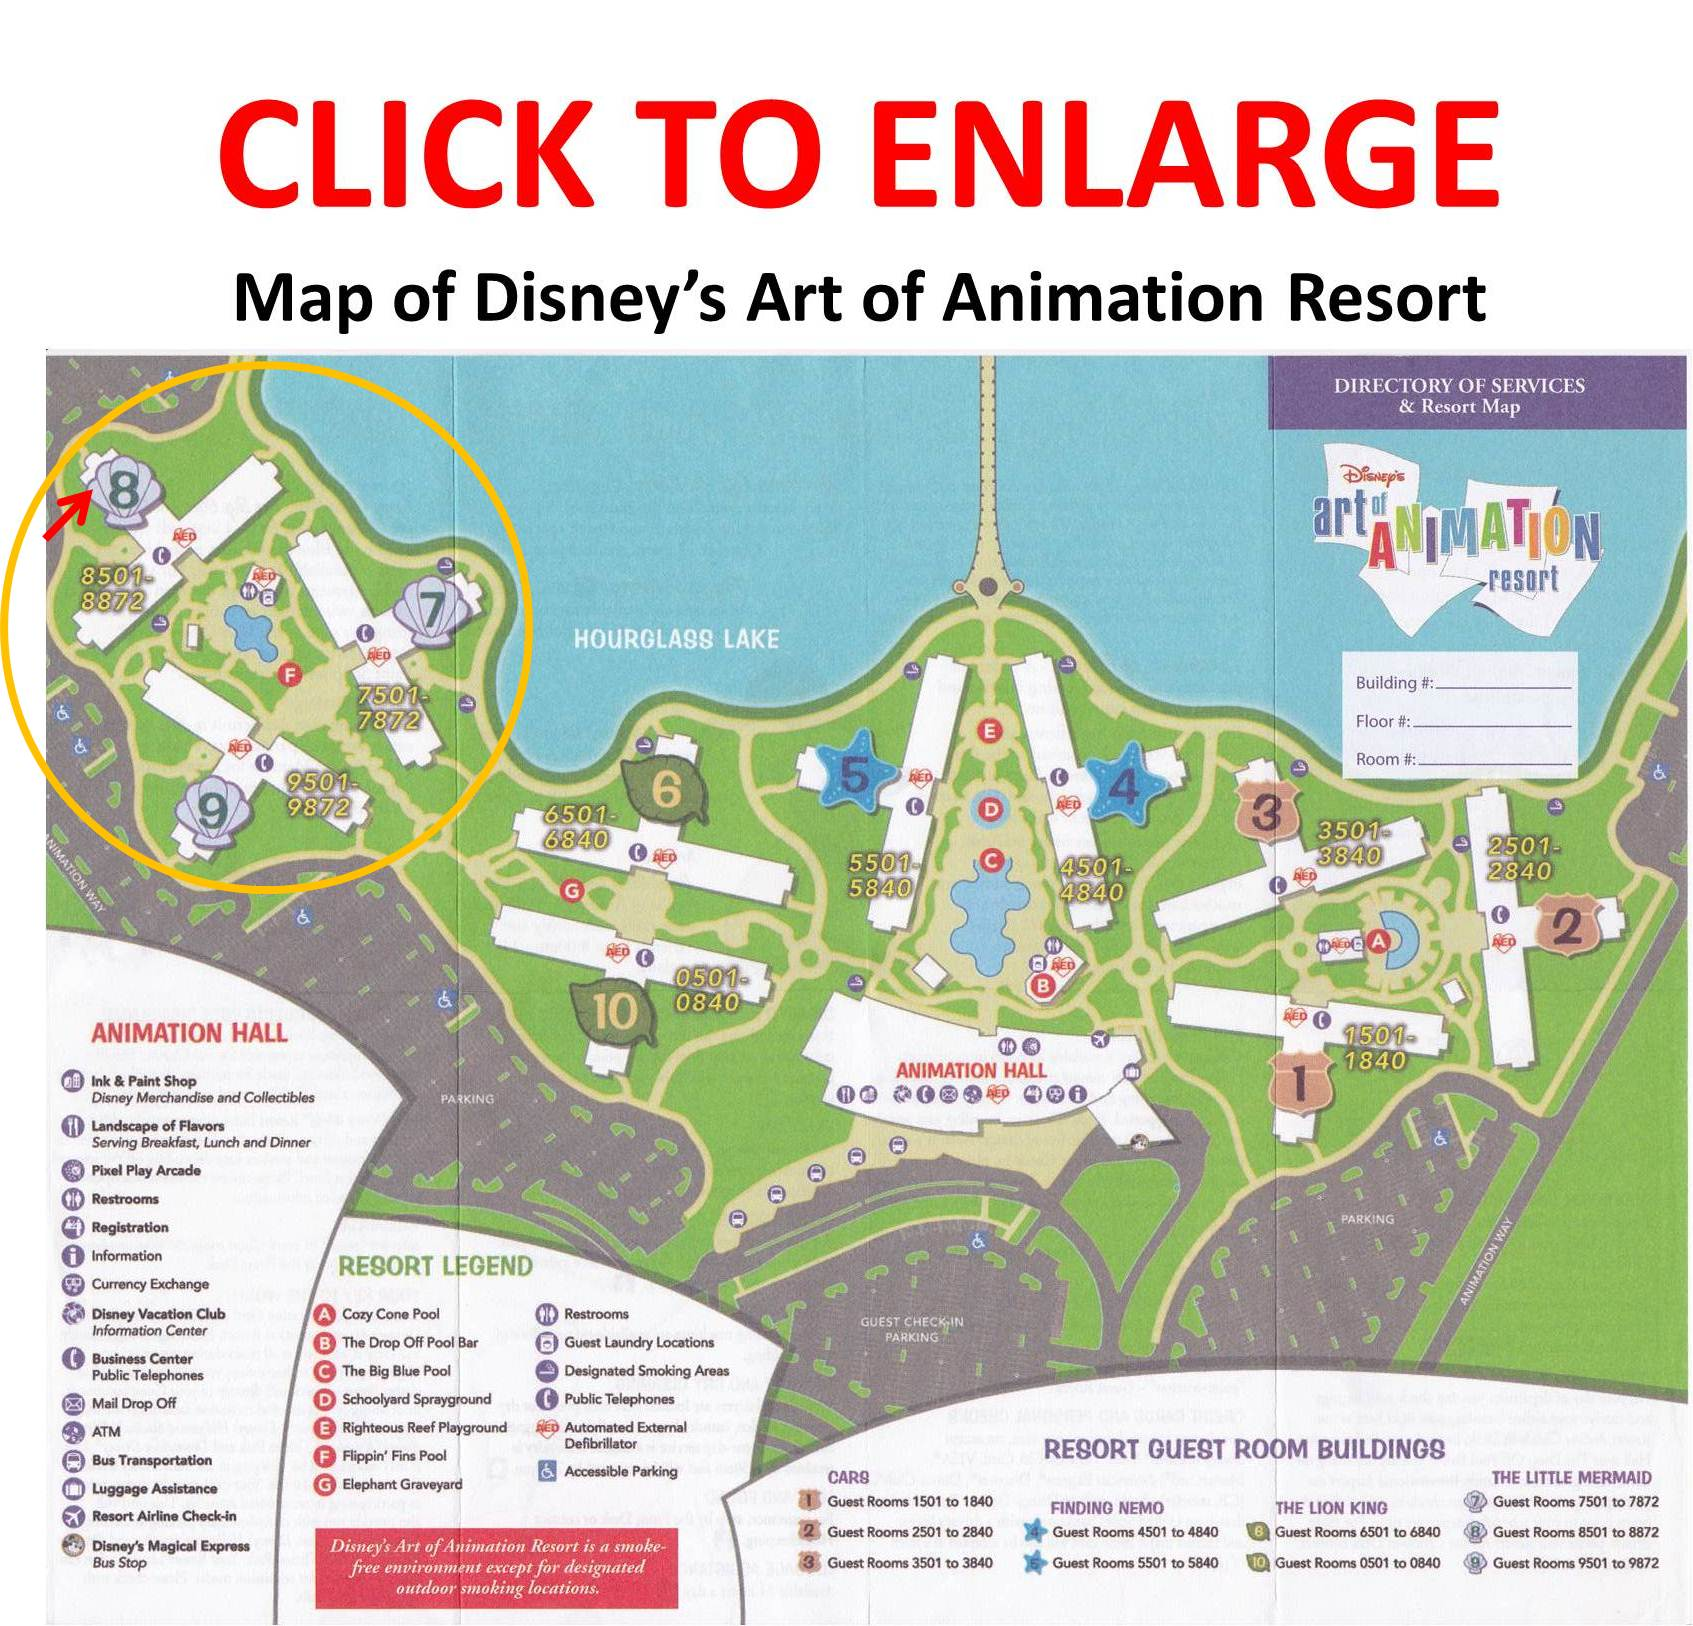 THE FURTHEST LITTLE MERMAID ROOMS ARE ABOUT A SEVEN MINUTE WALK FROM ANIMATION HALL